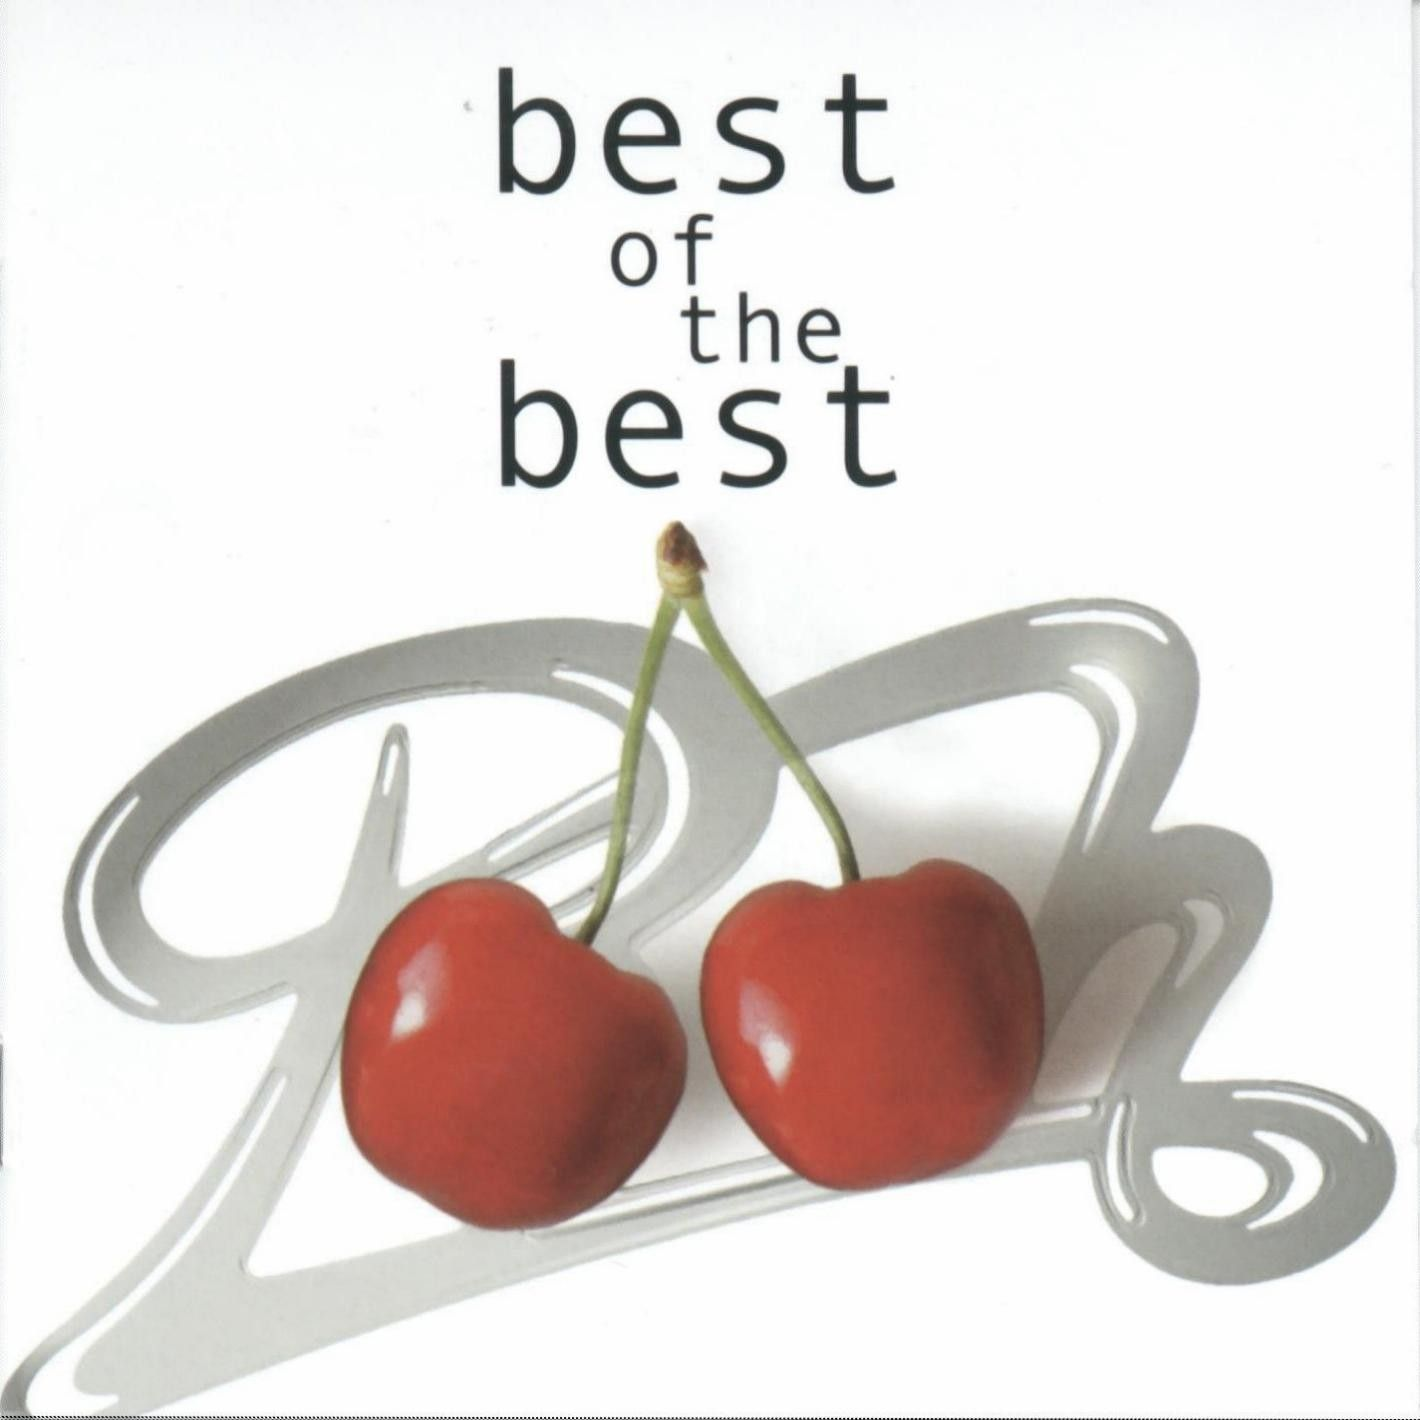 Pooh - Best Of The Best album cover